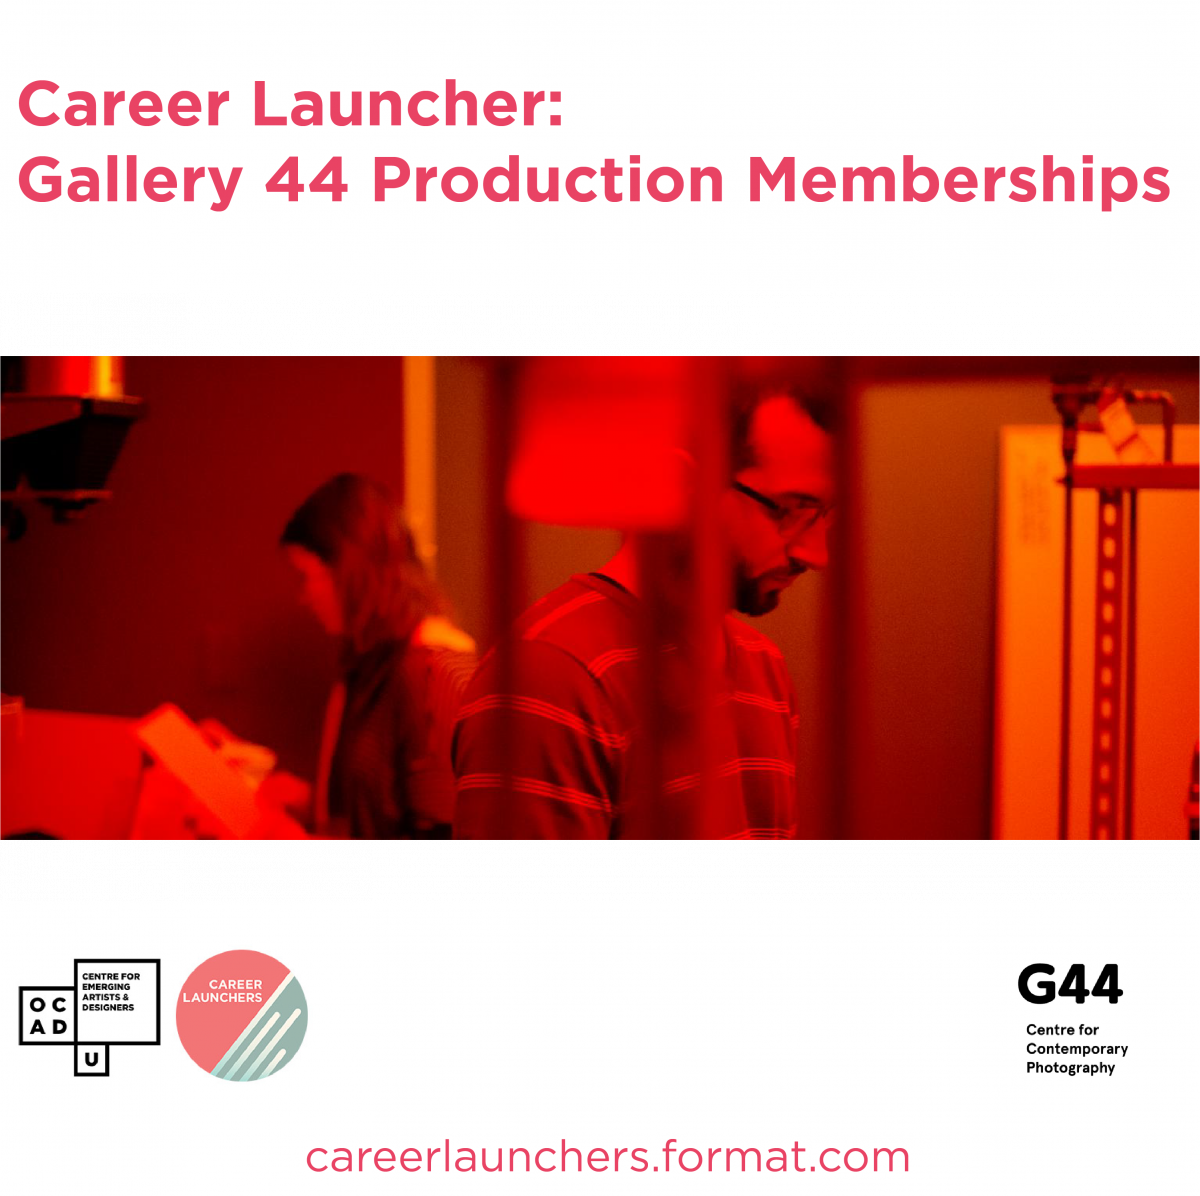 Call for Applications Career Launcher Gallery 44 Production Memberships